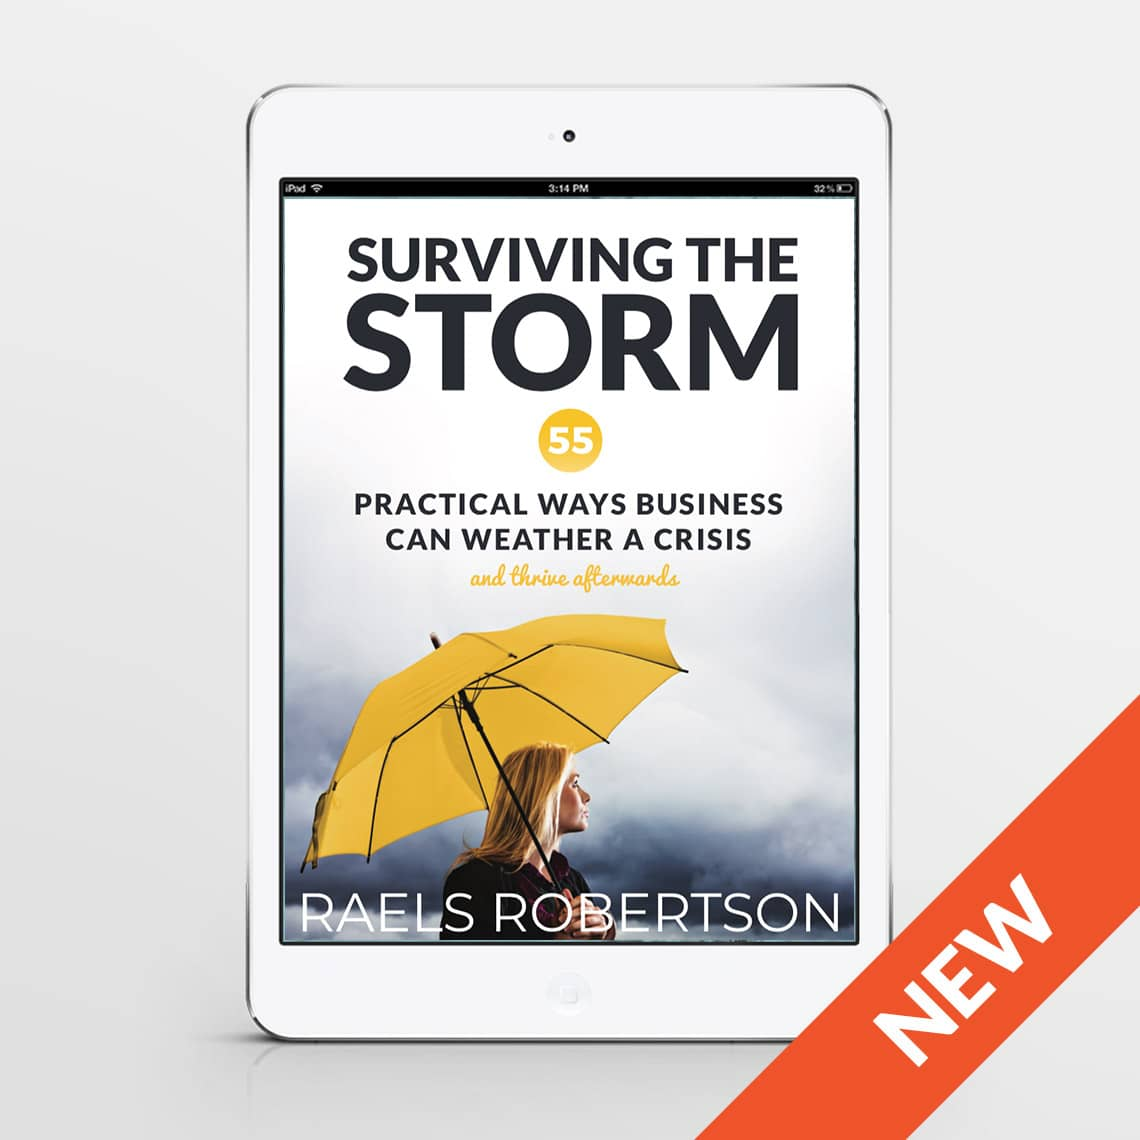 Surviving the Storm – 55 Practical Ways Business Can Weather A Crisis and Thrive Afterwards